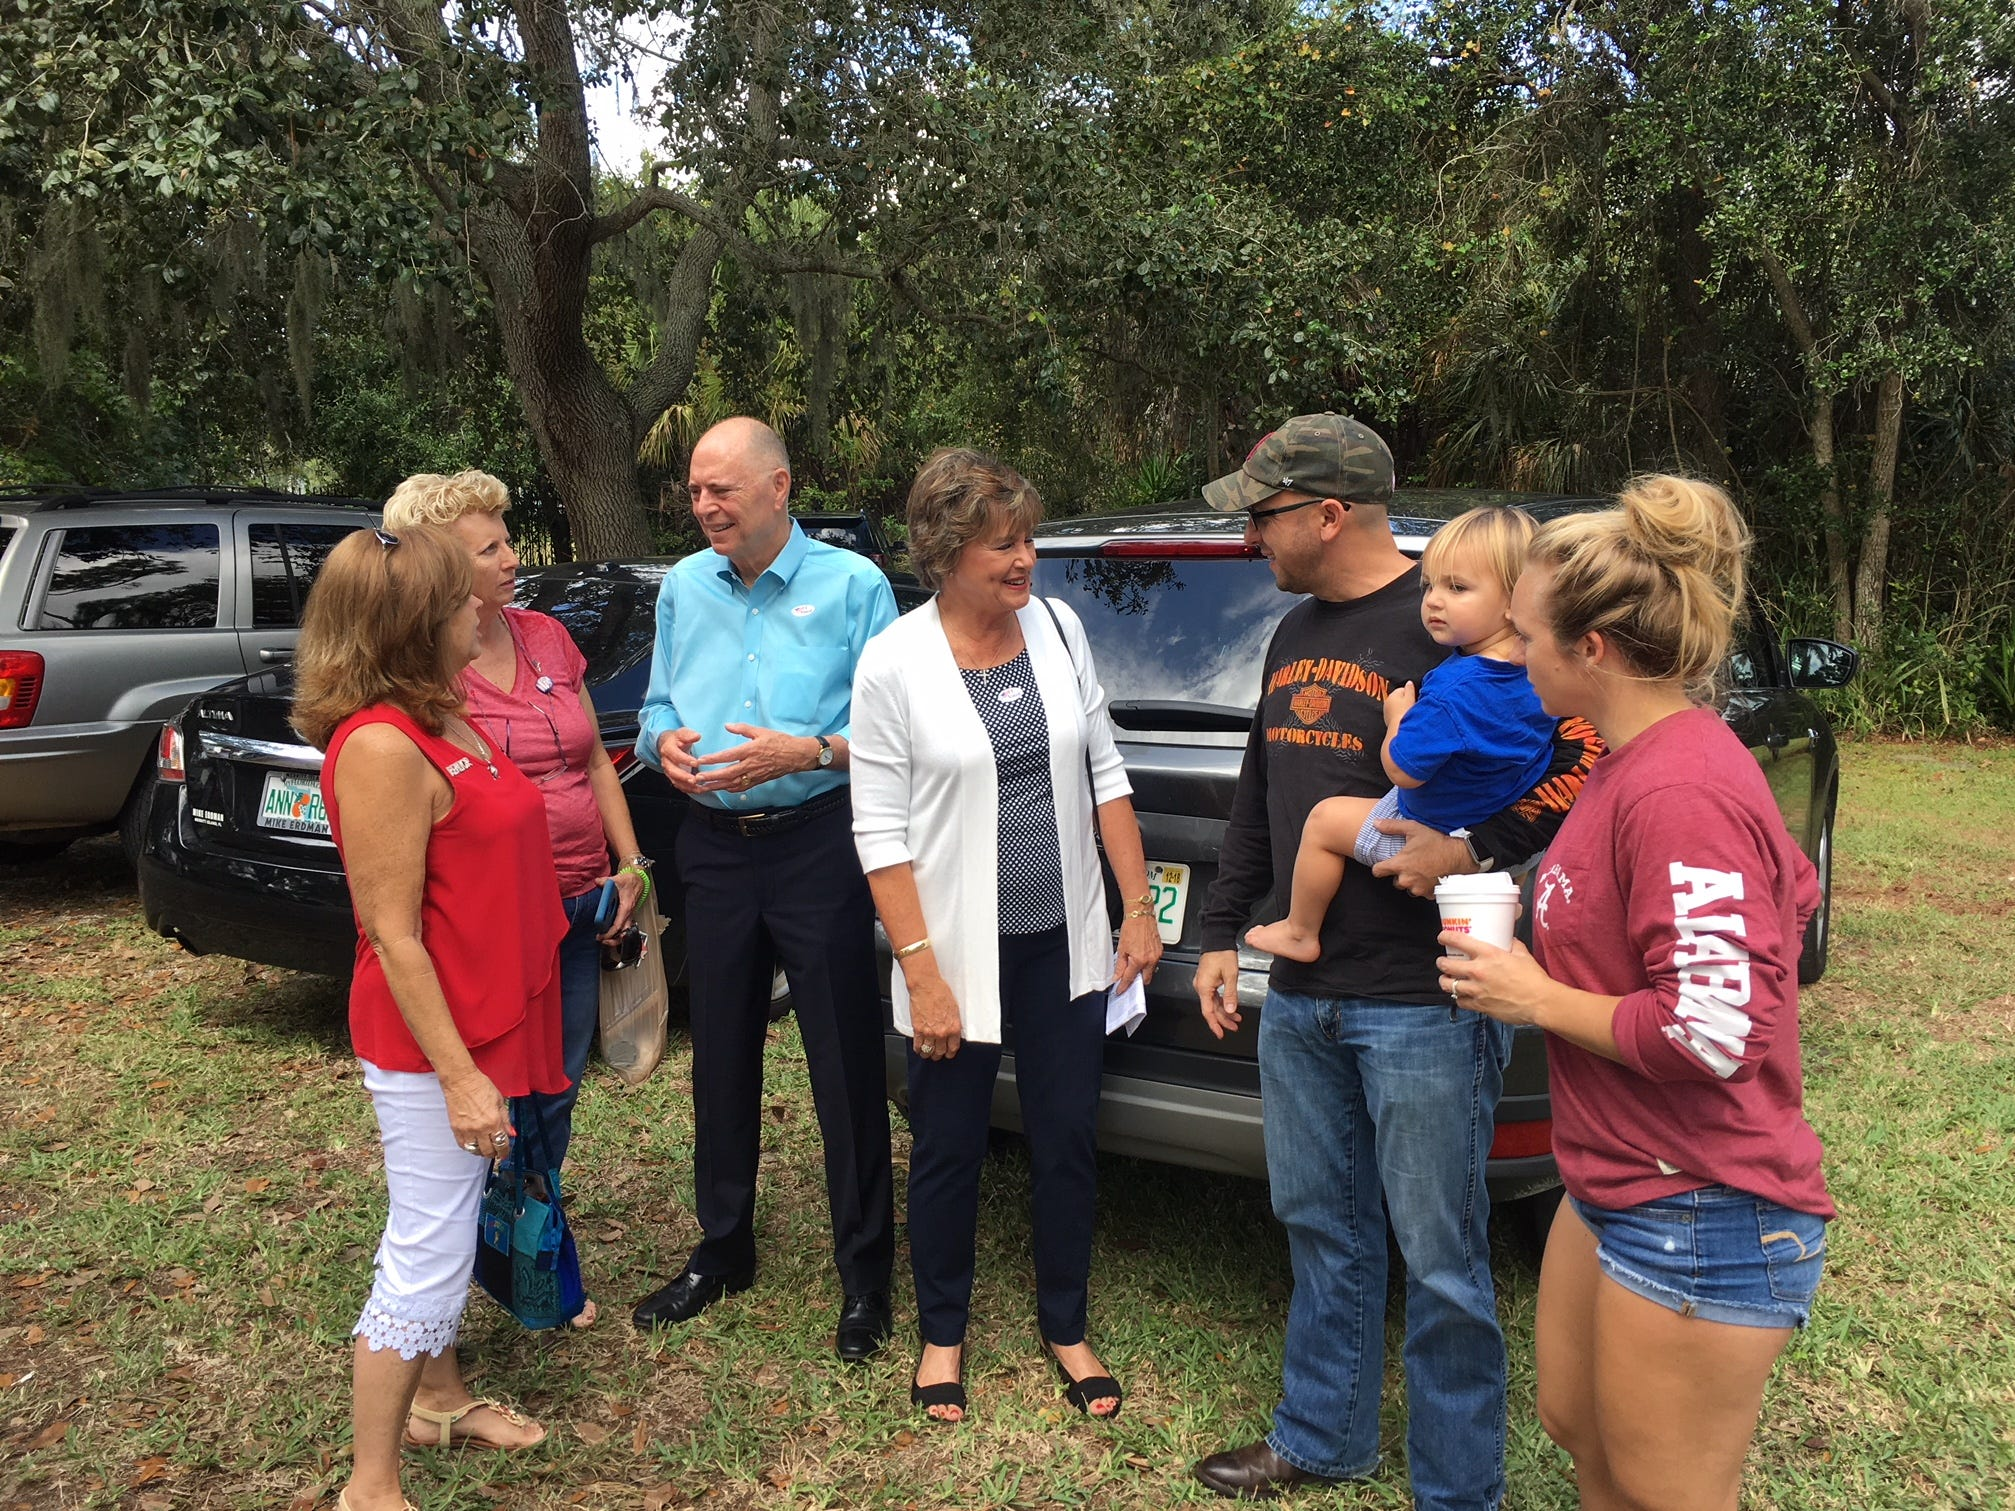 Congressman Bill and Katie Posey draw a crowd of well wishers after voting at Cocoa Rockledge Garden Club.